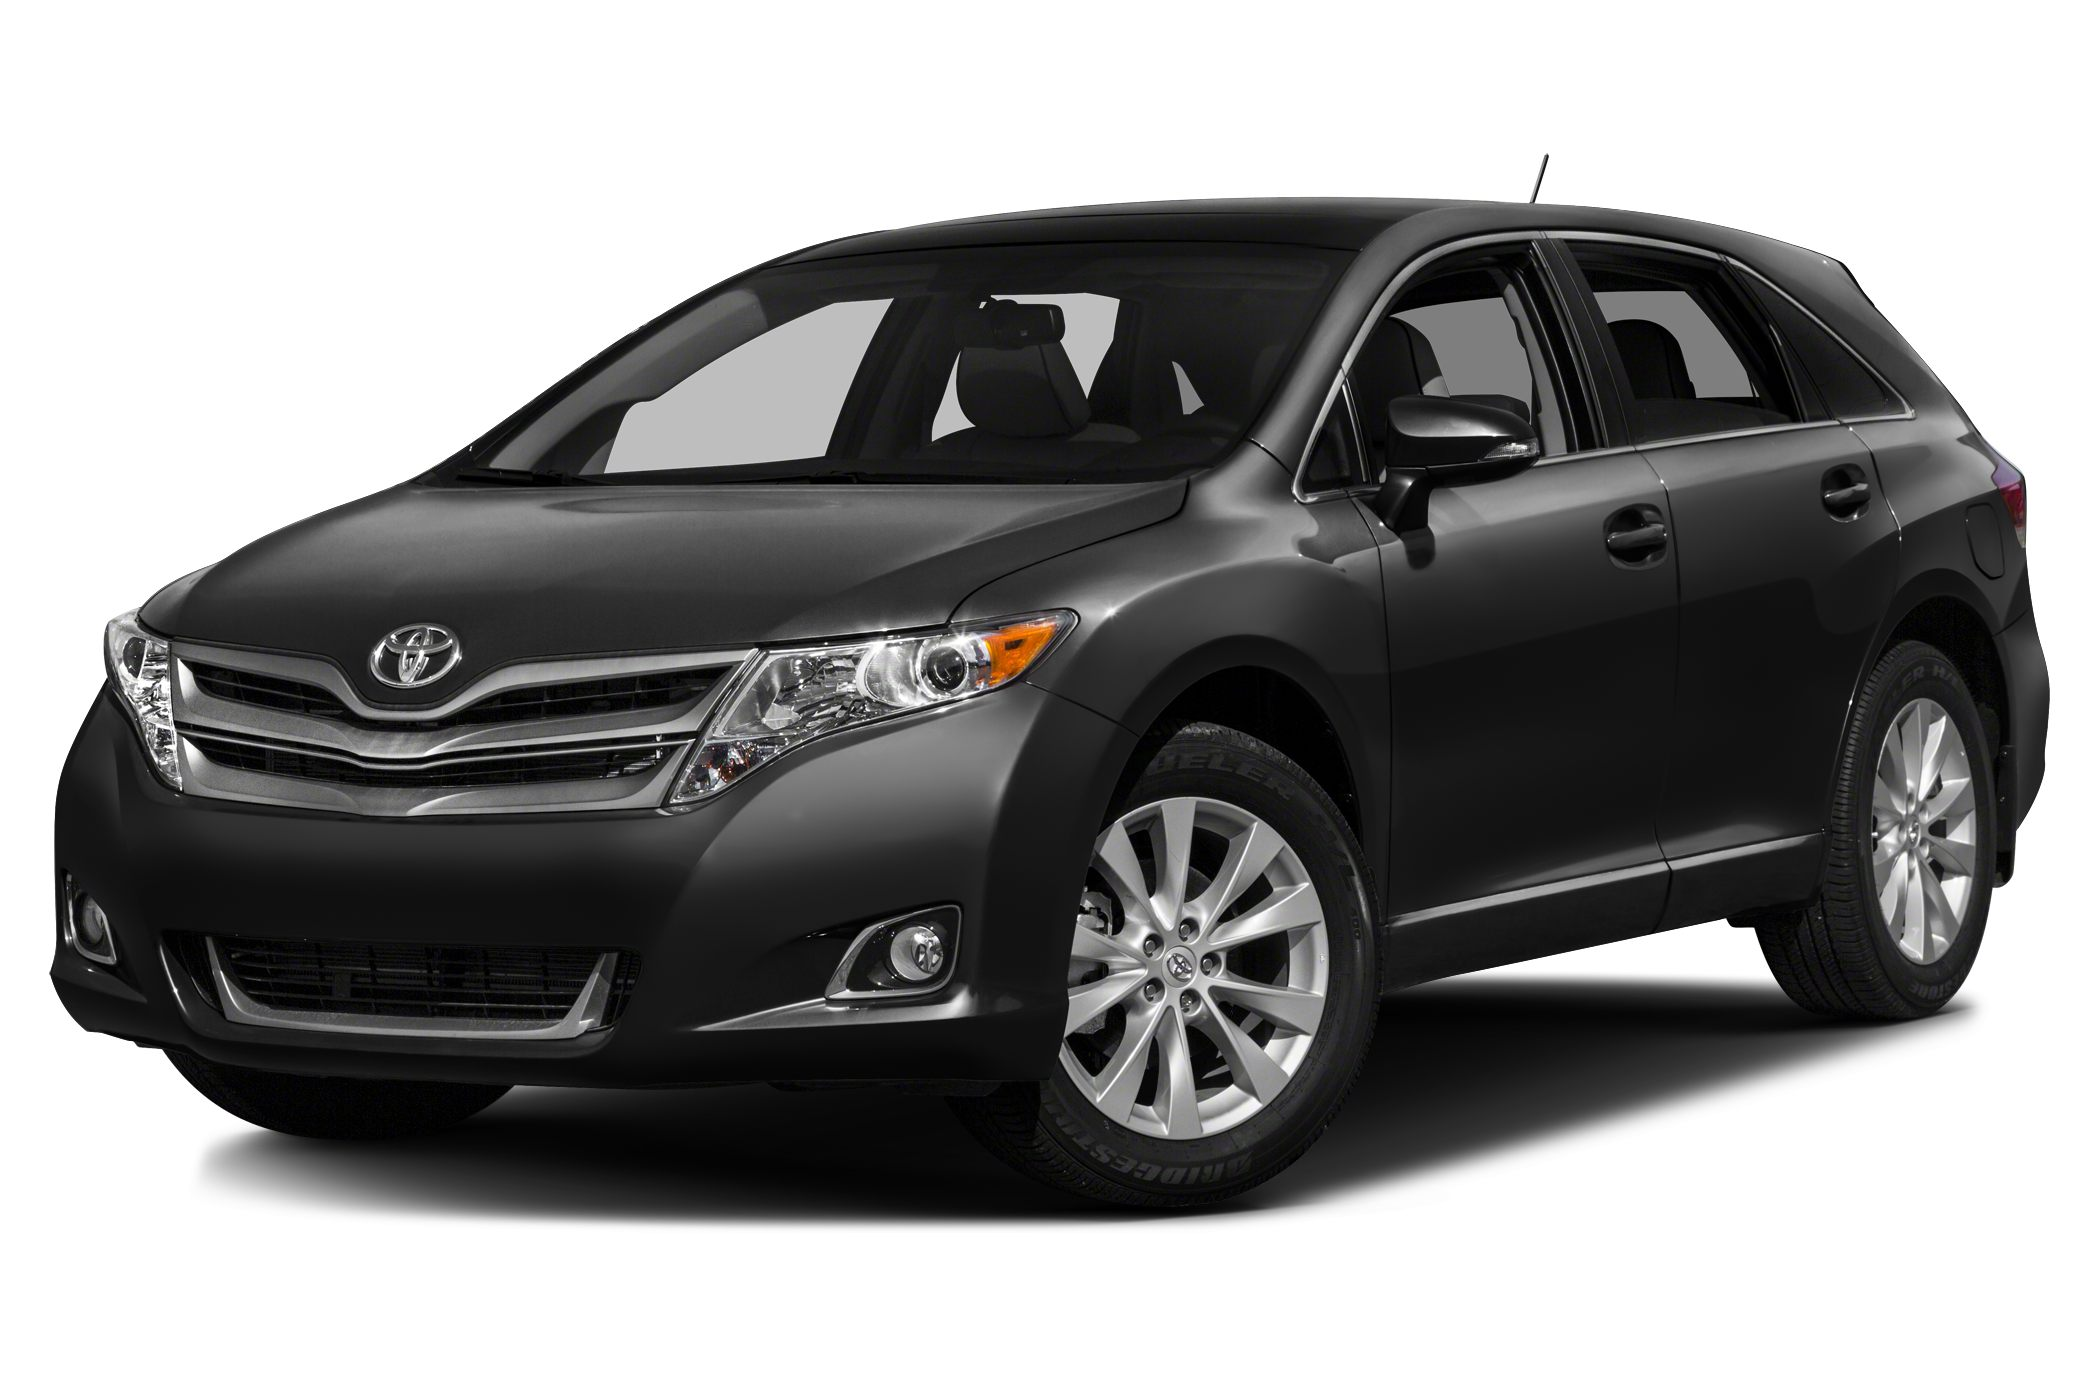 2015 Toyota Venza LE SUV for sale in New York for $30,600 with 0 miles